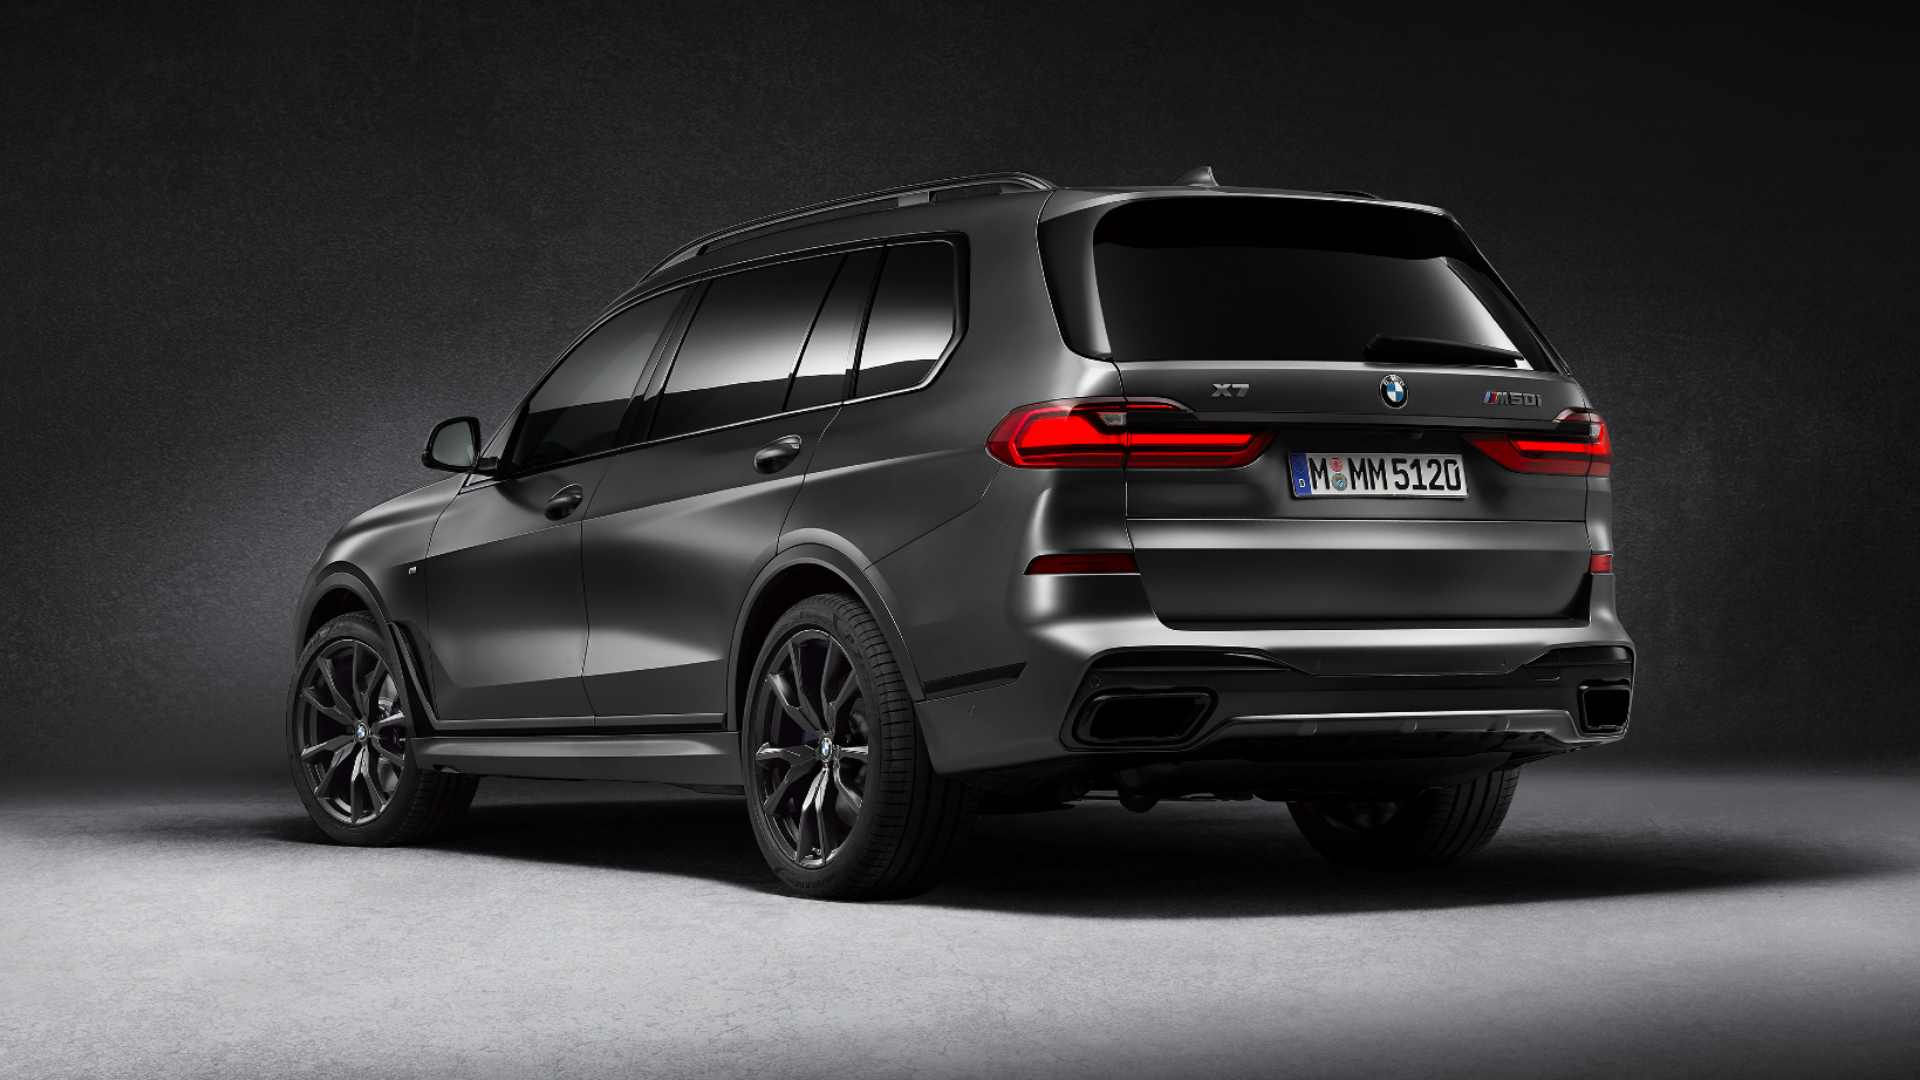 With 530 hp on tap, the BMW X7 Dark Shadow will do 0-100 kph in a claimed 5.4 seconds. Image: BMW